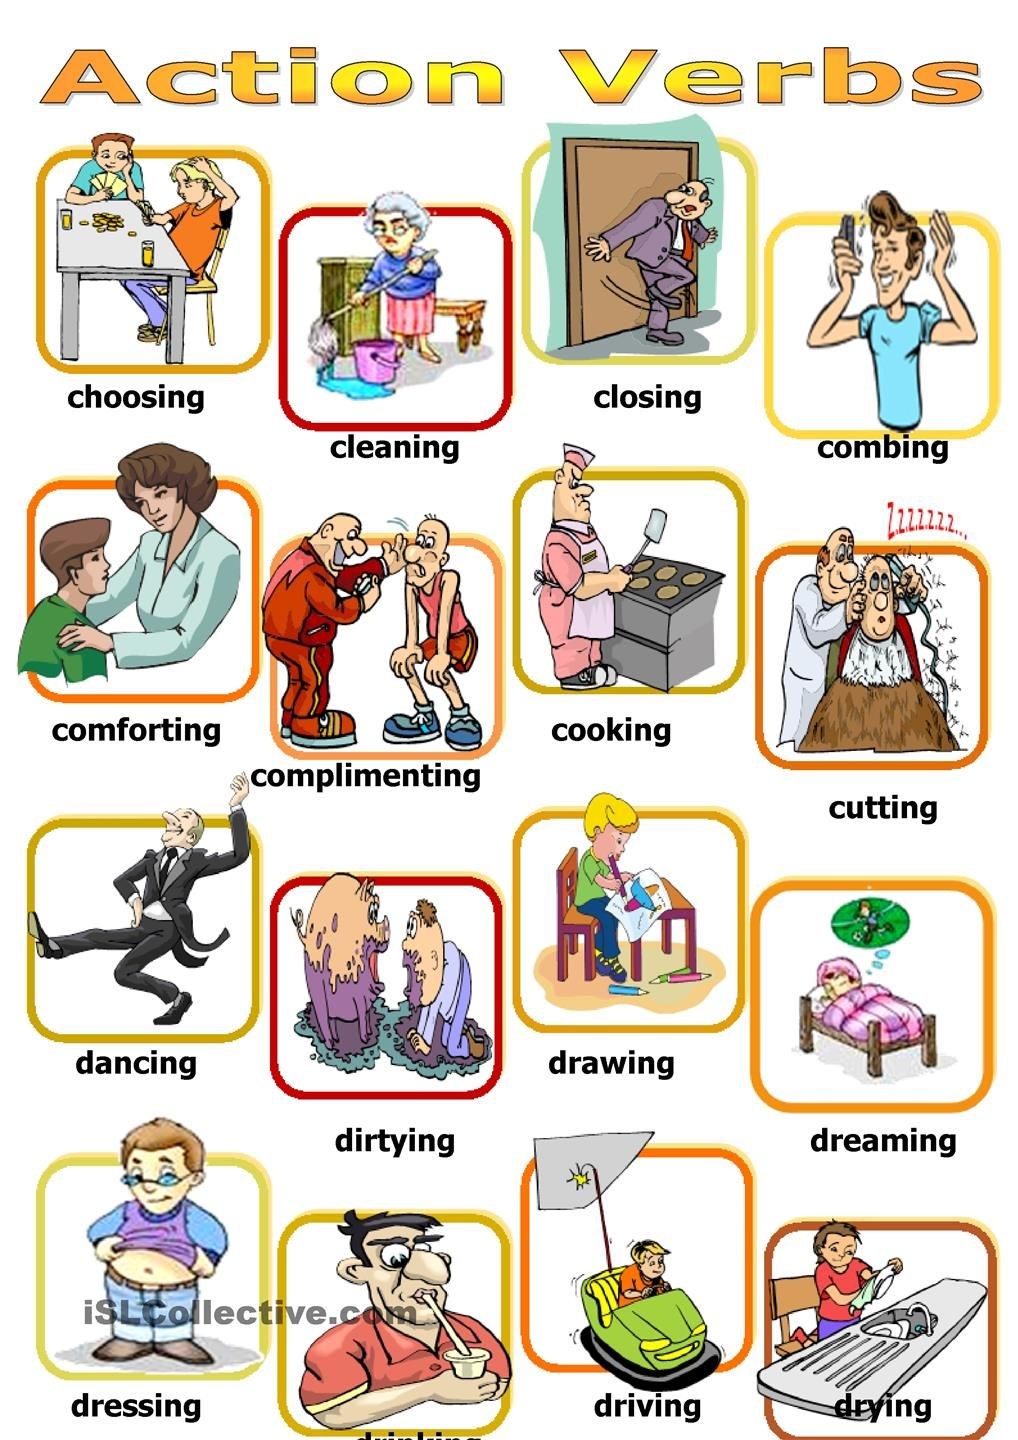 Action verbs board game | poon | Pinterest